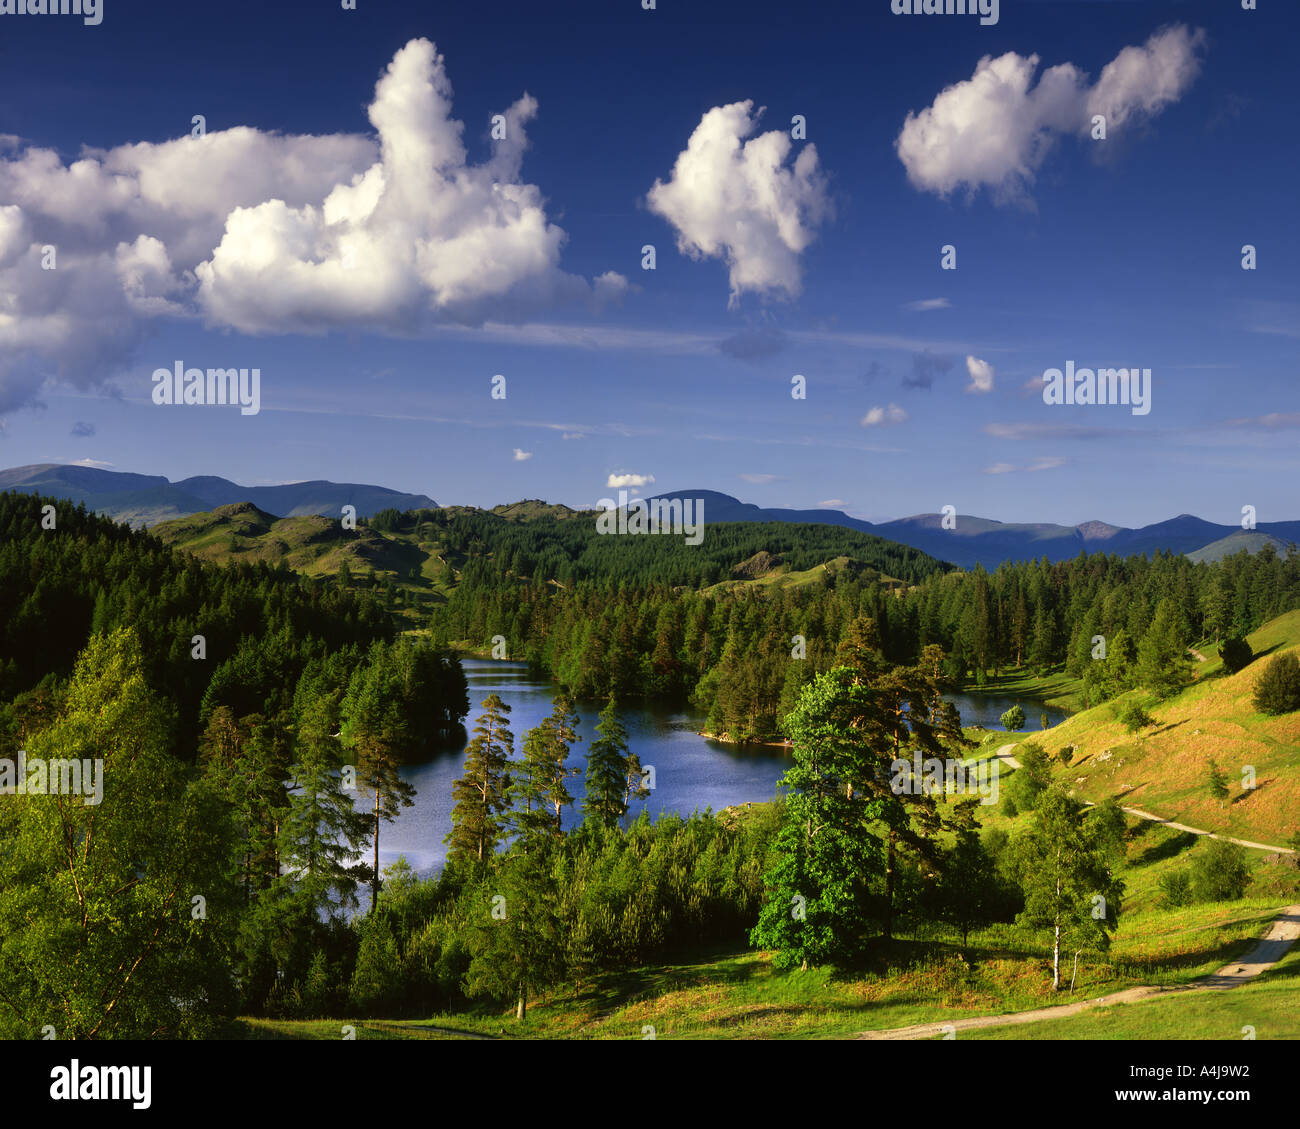 Fr - CUMBRIA : Tarn Hows dans le Parc National de Lake District Photo Stock